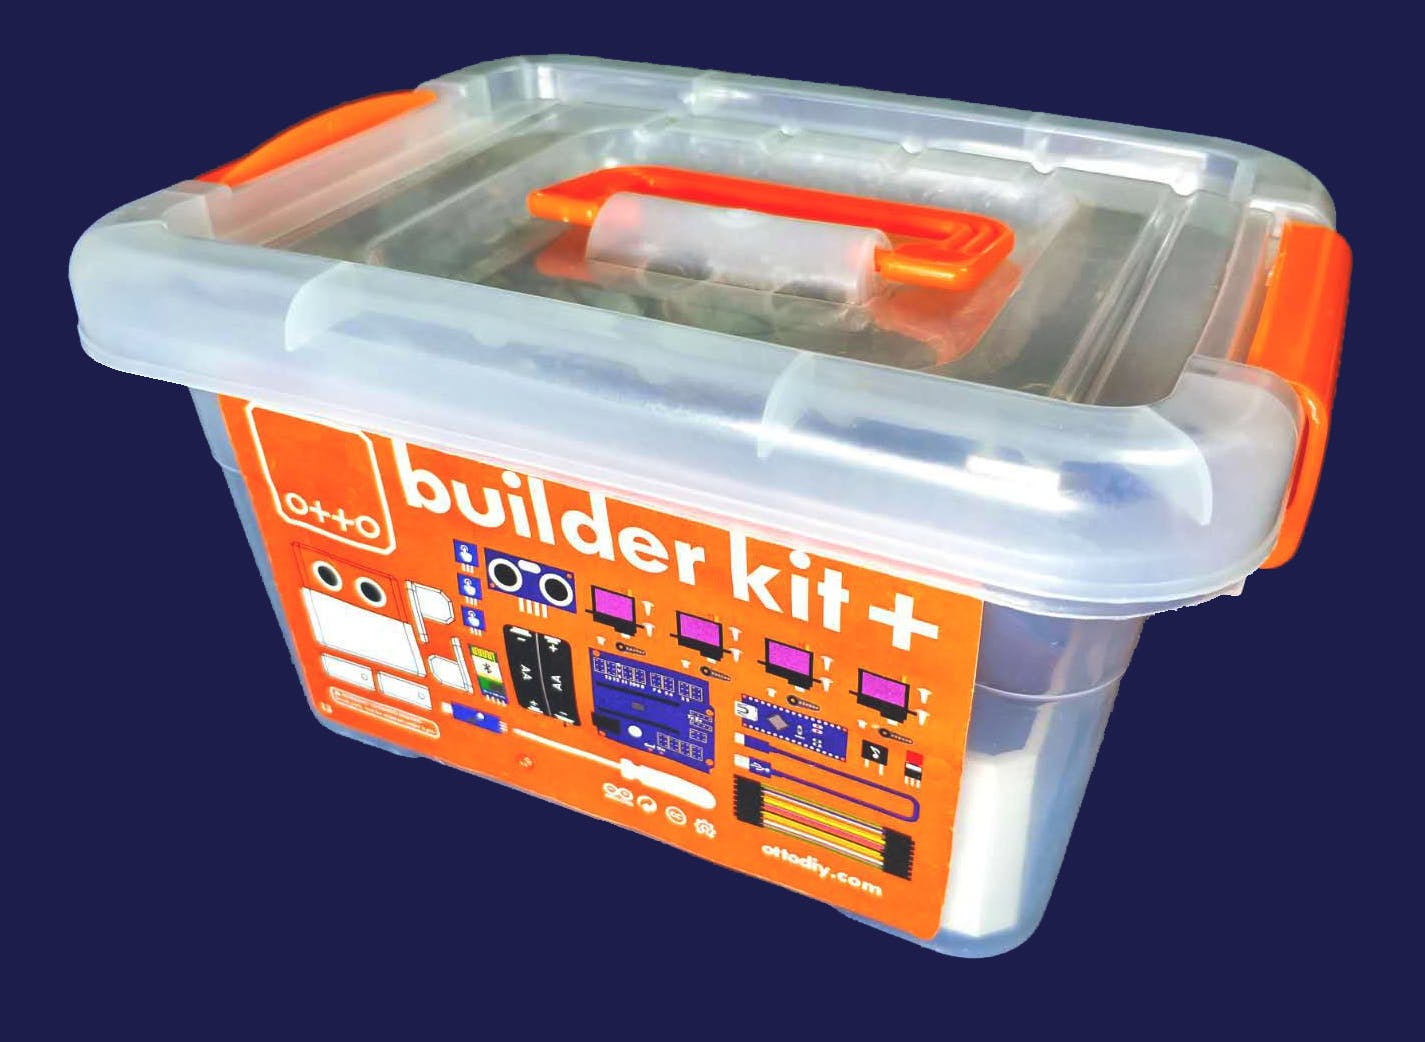 OttoDIY+ builder kit